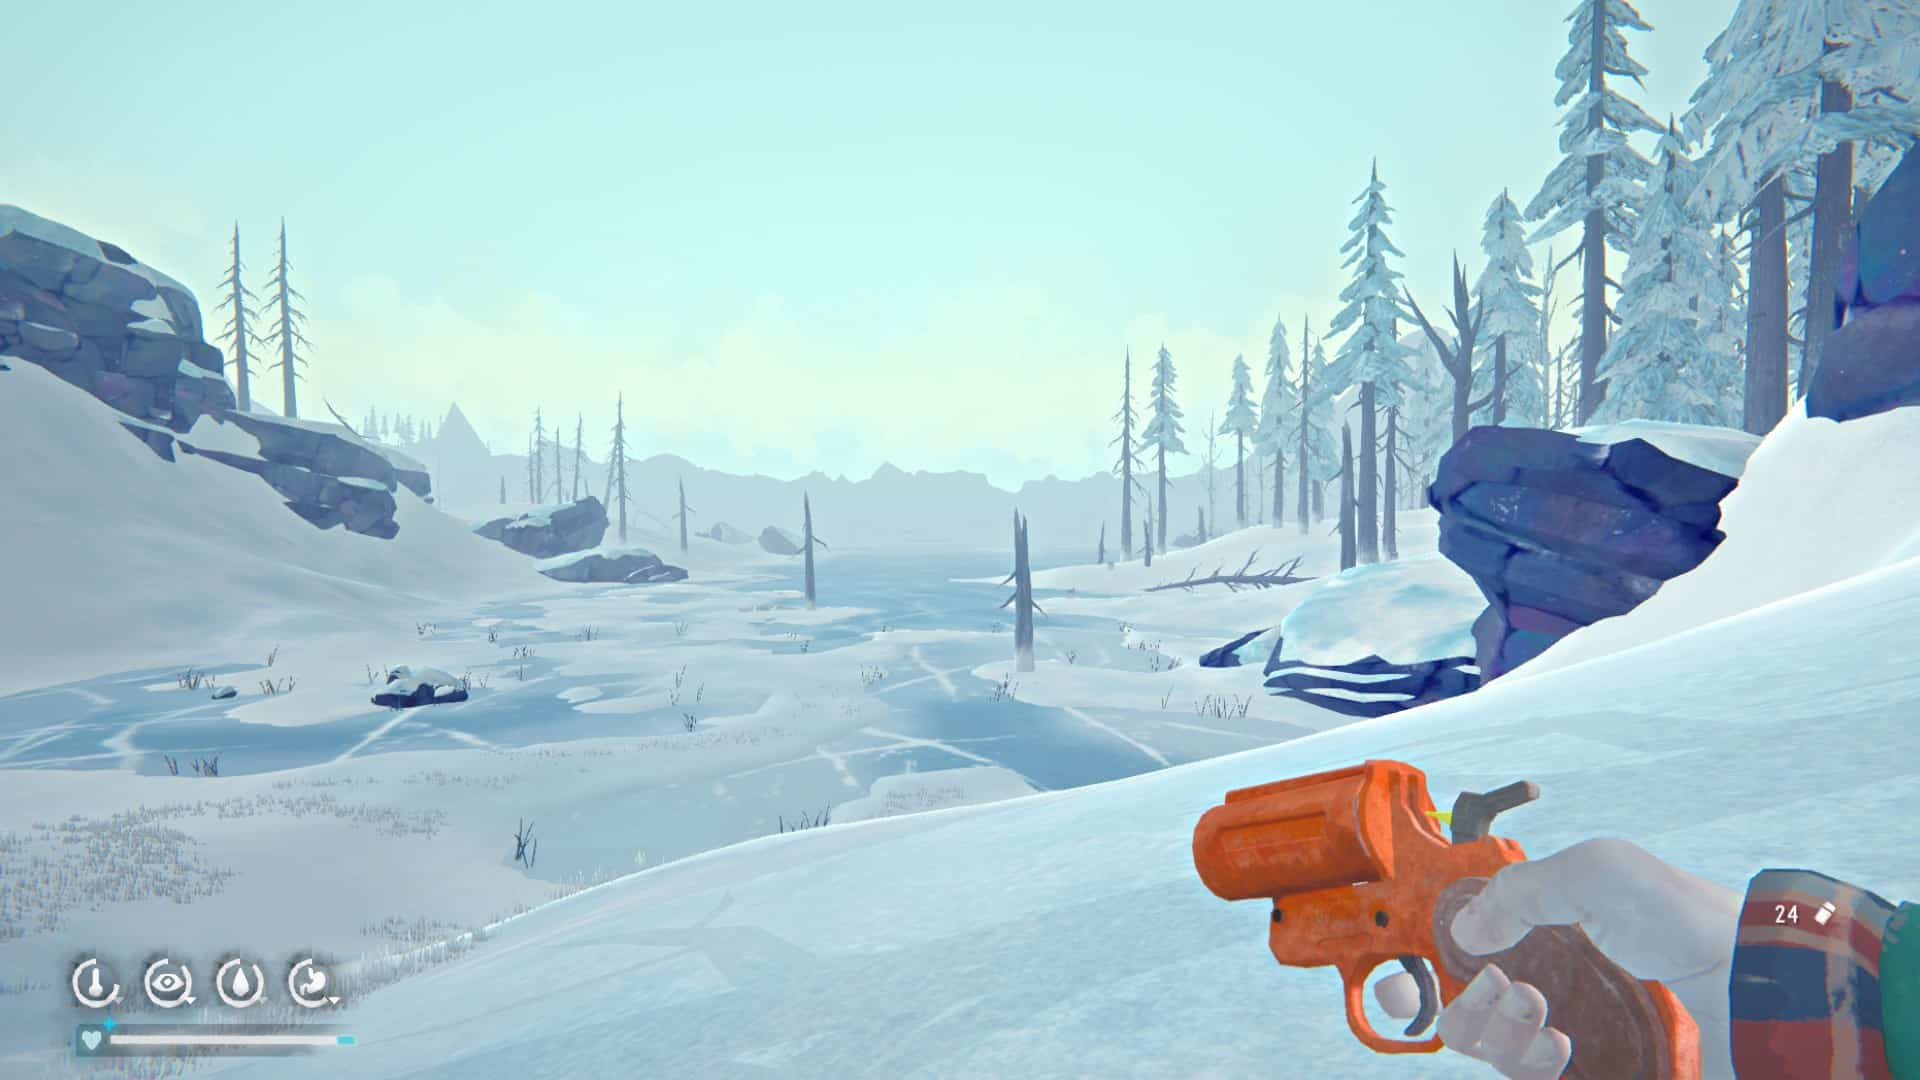 Gaming: The Long Dark Wintermute Redux – There and back again